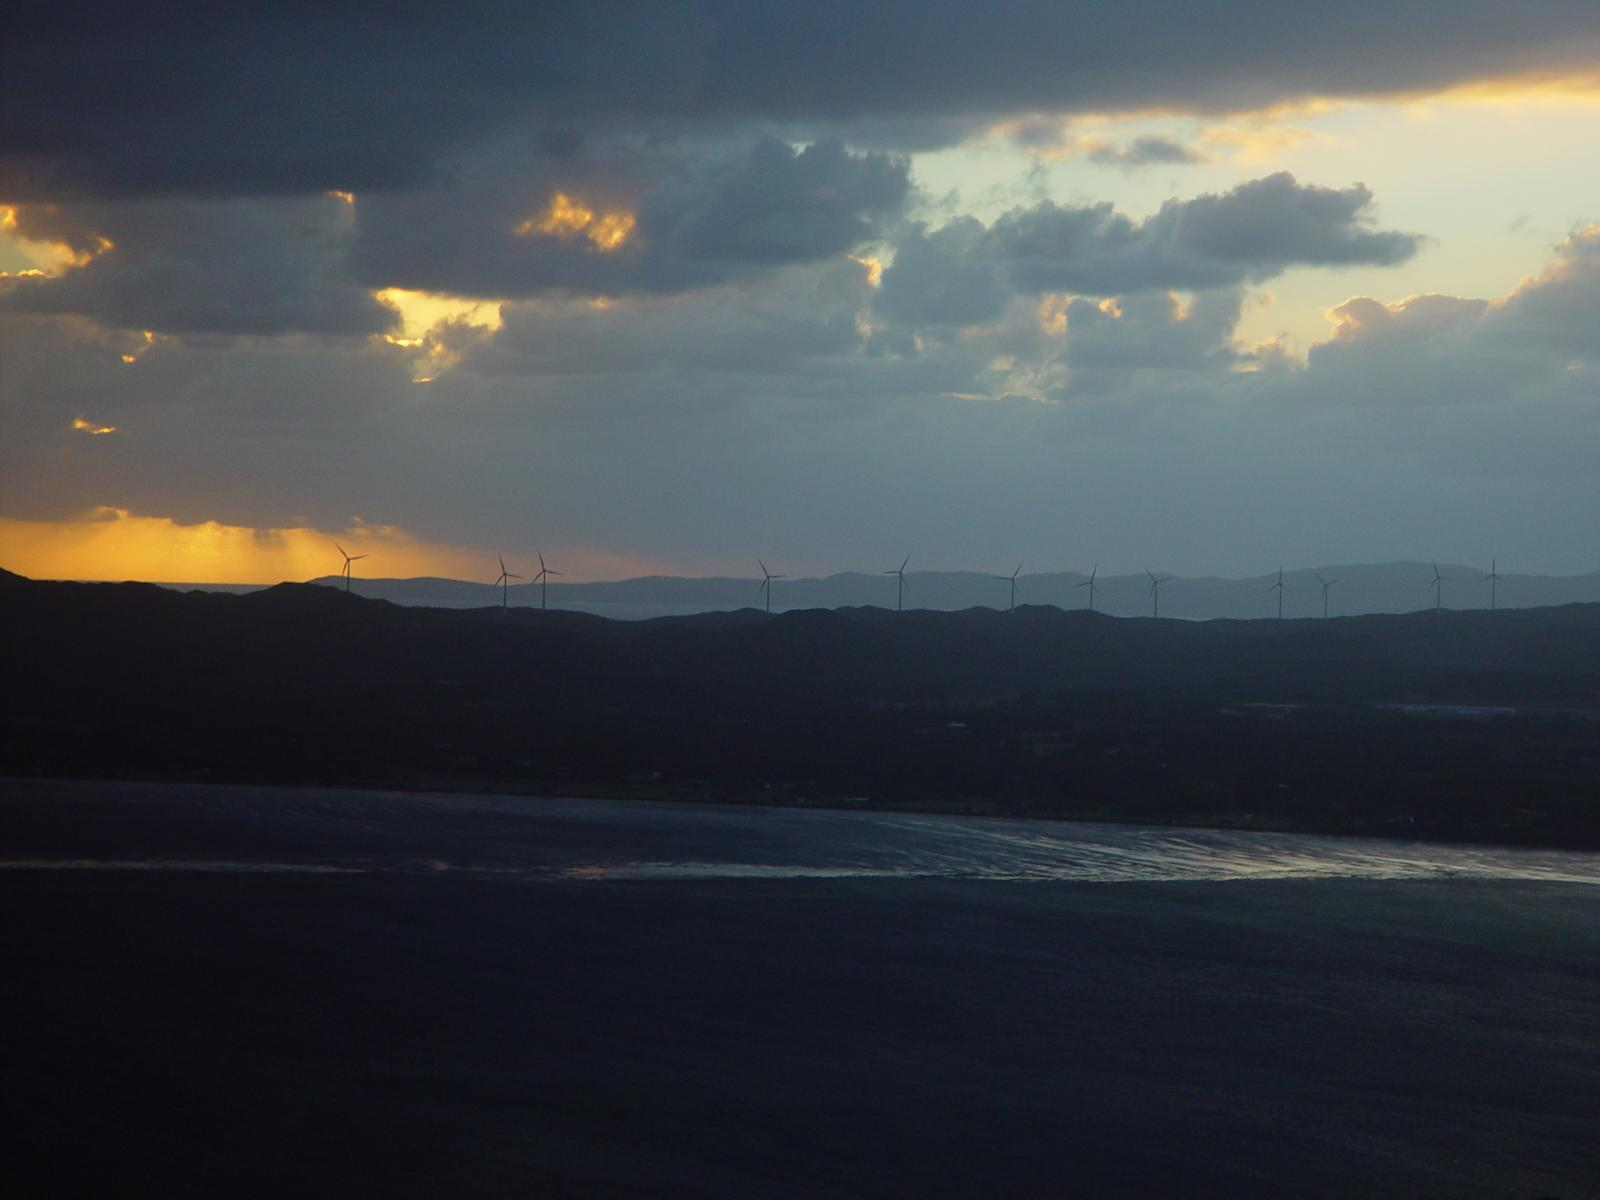 Albany wind-farm against the sunset, Western Australia